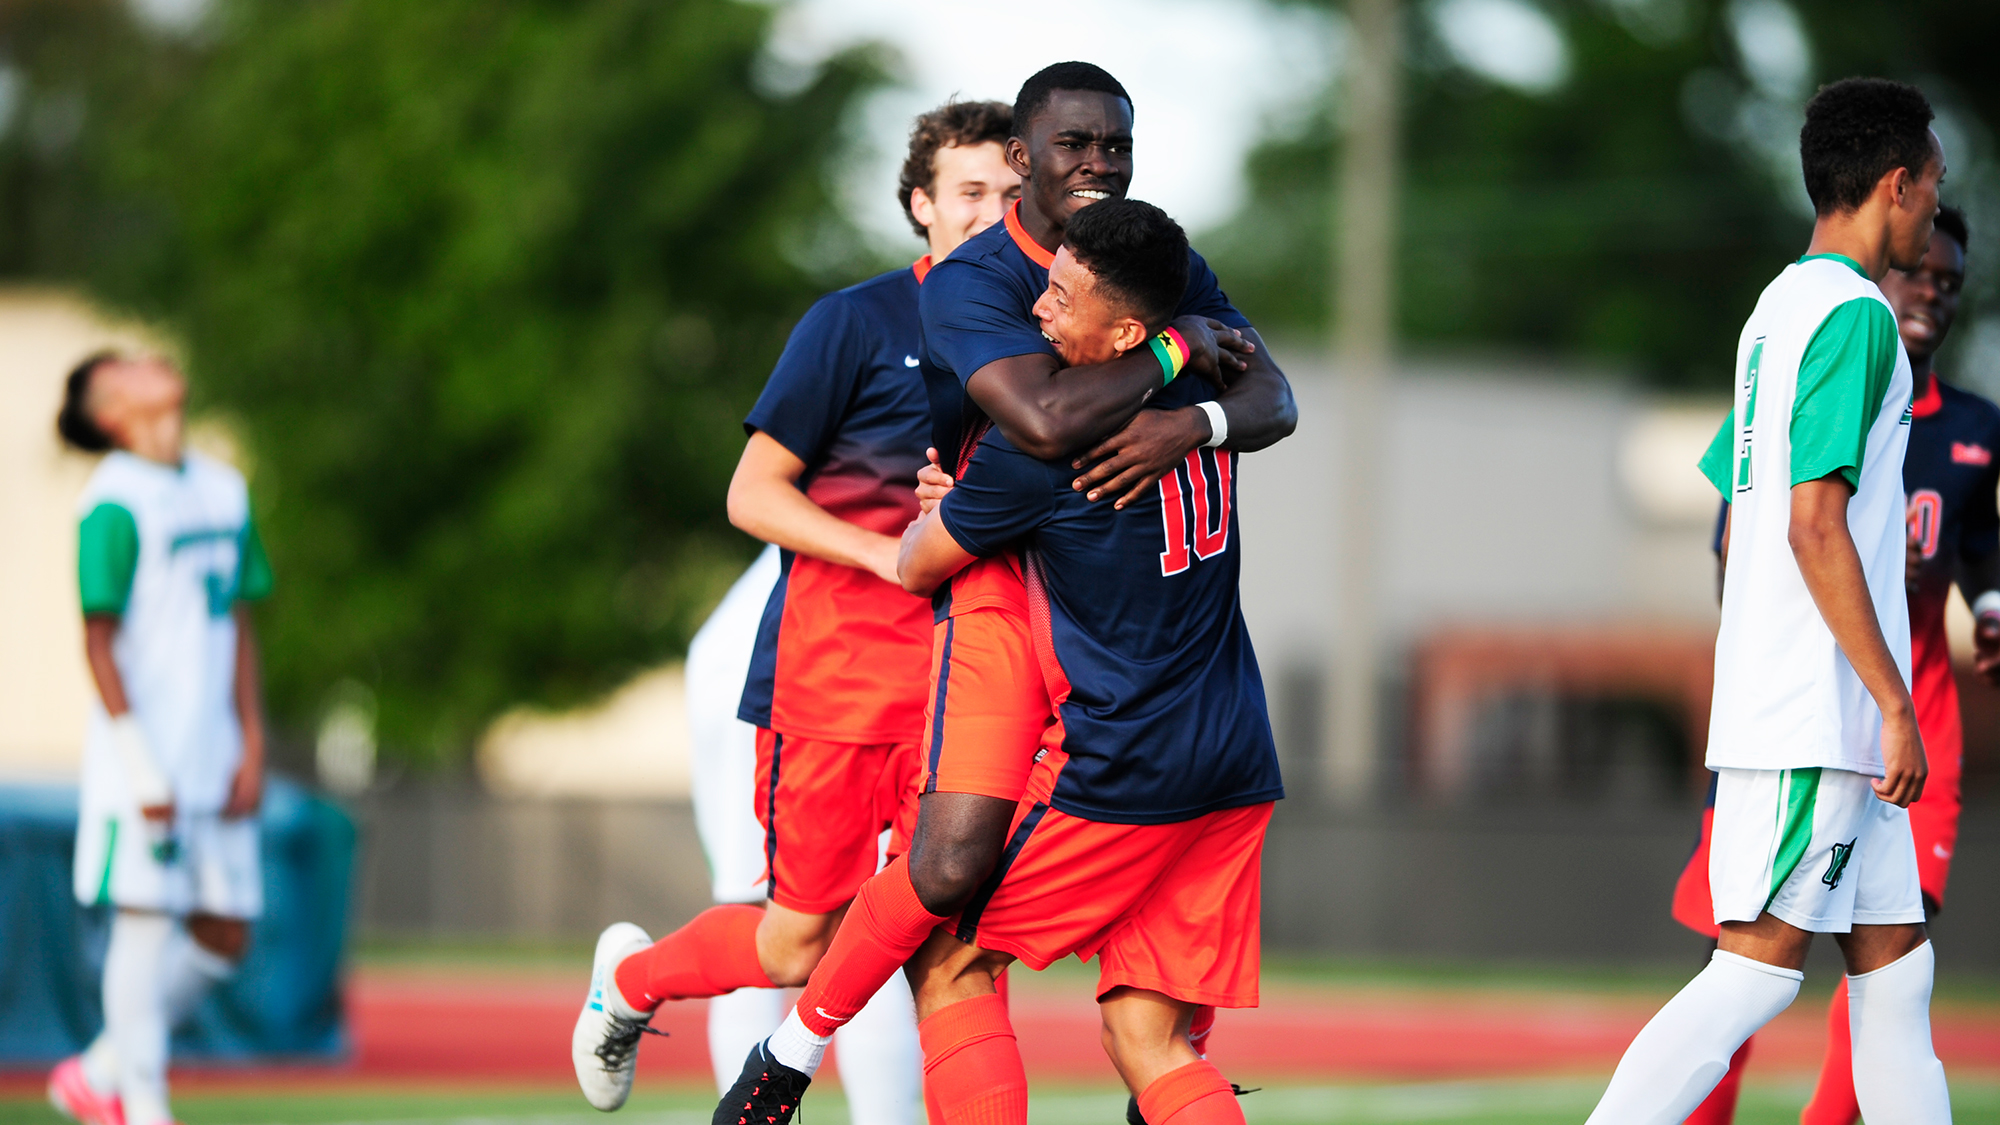 Members of the 2017 Gettysburg Men's Soccer team celebrate (Photo courtesy of Gettysburg College Athletics)